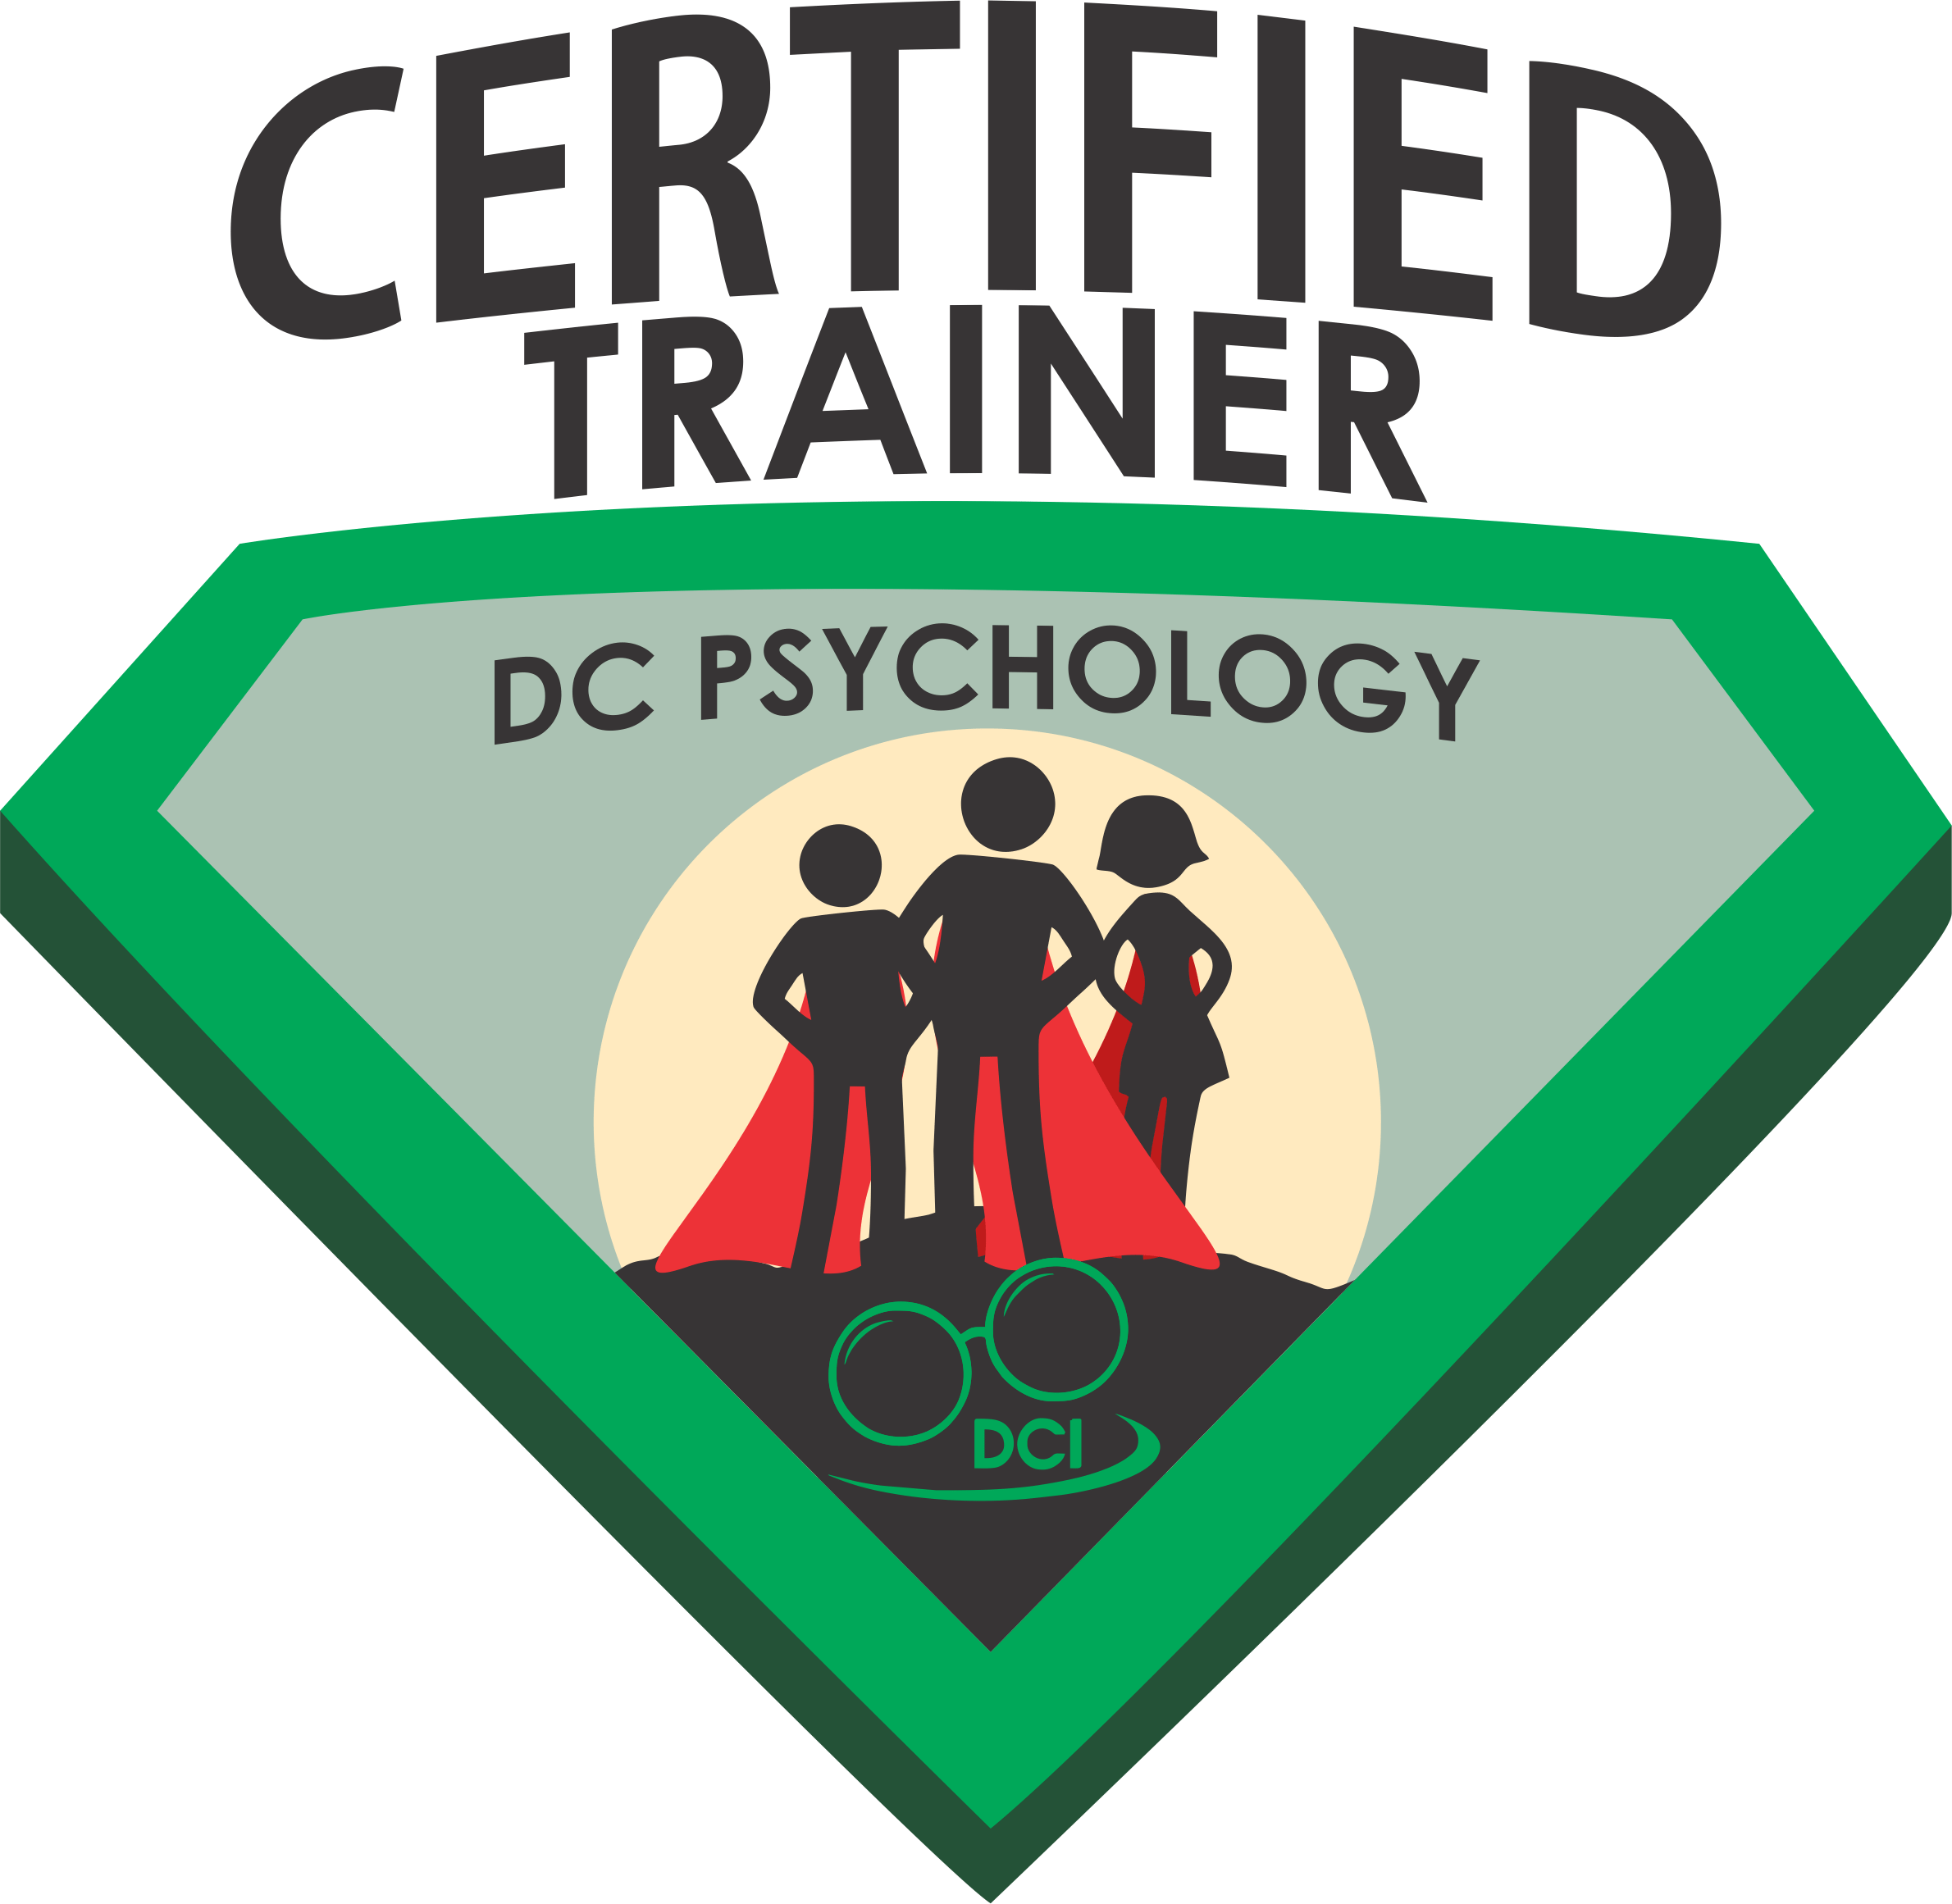 Achievement-Level-Certification-certified-trainer